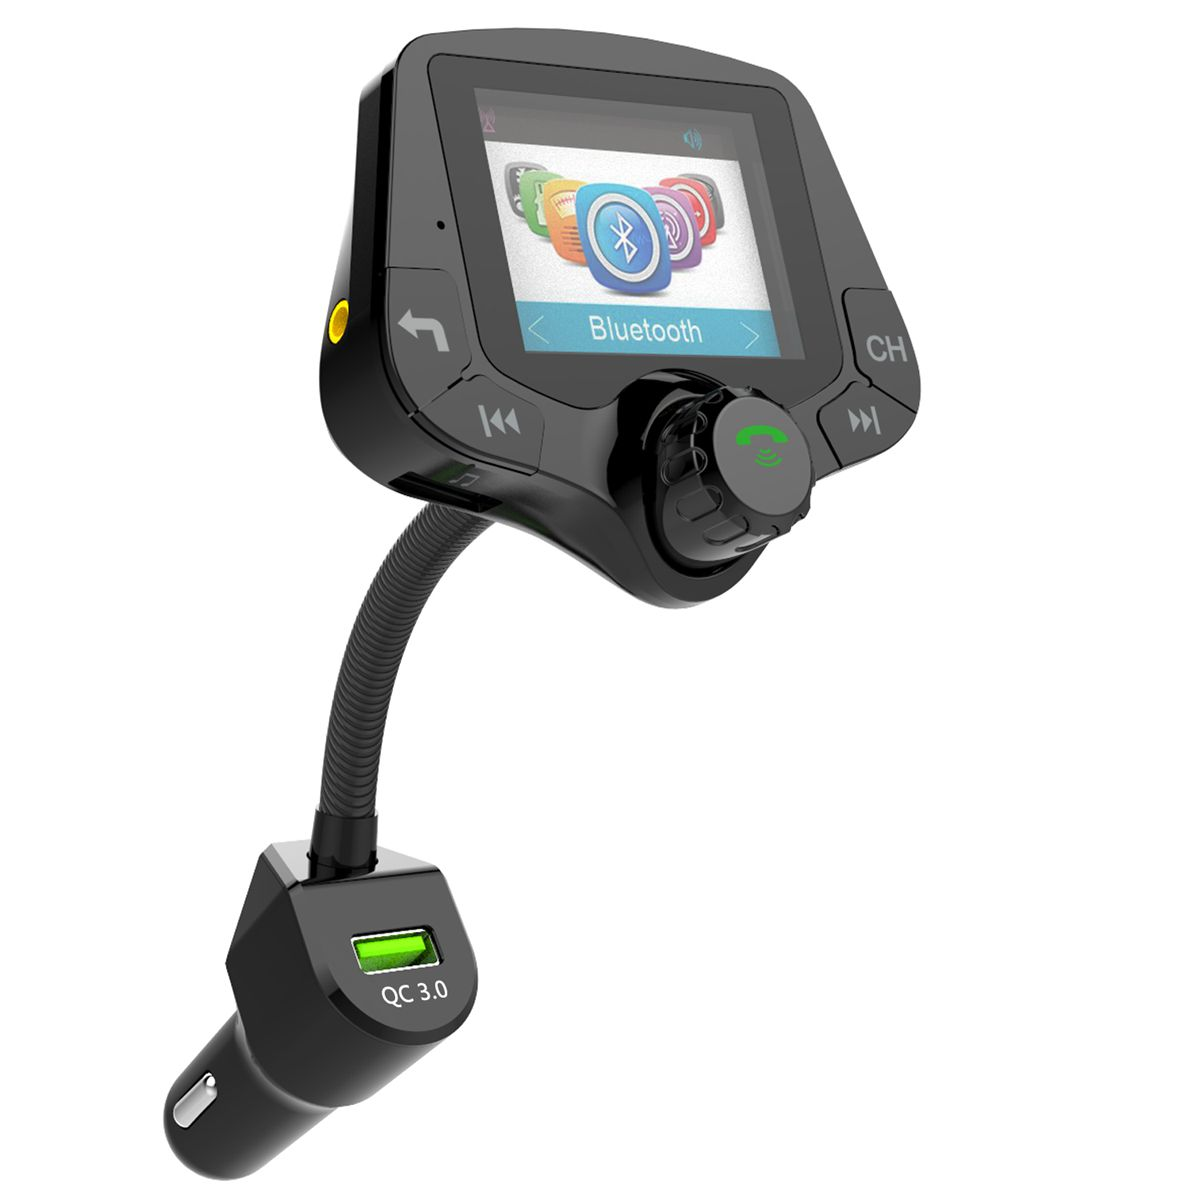 G24 HD Color Screen Wireless Car Kit Bluetooth MP3 Player Hands free Calling FM Transmitter Car Kit support QC 3.0 Fast charger-in FM Transmitters from Automobiles & Motorcycles